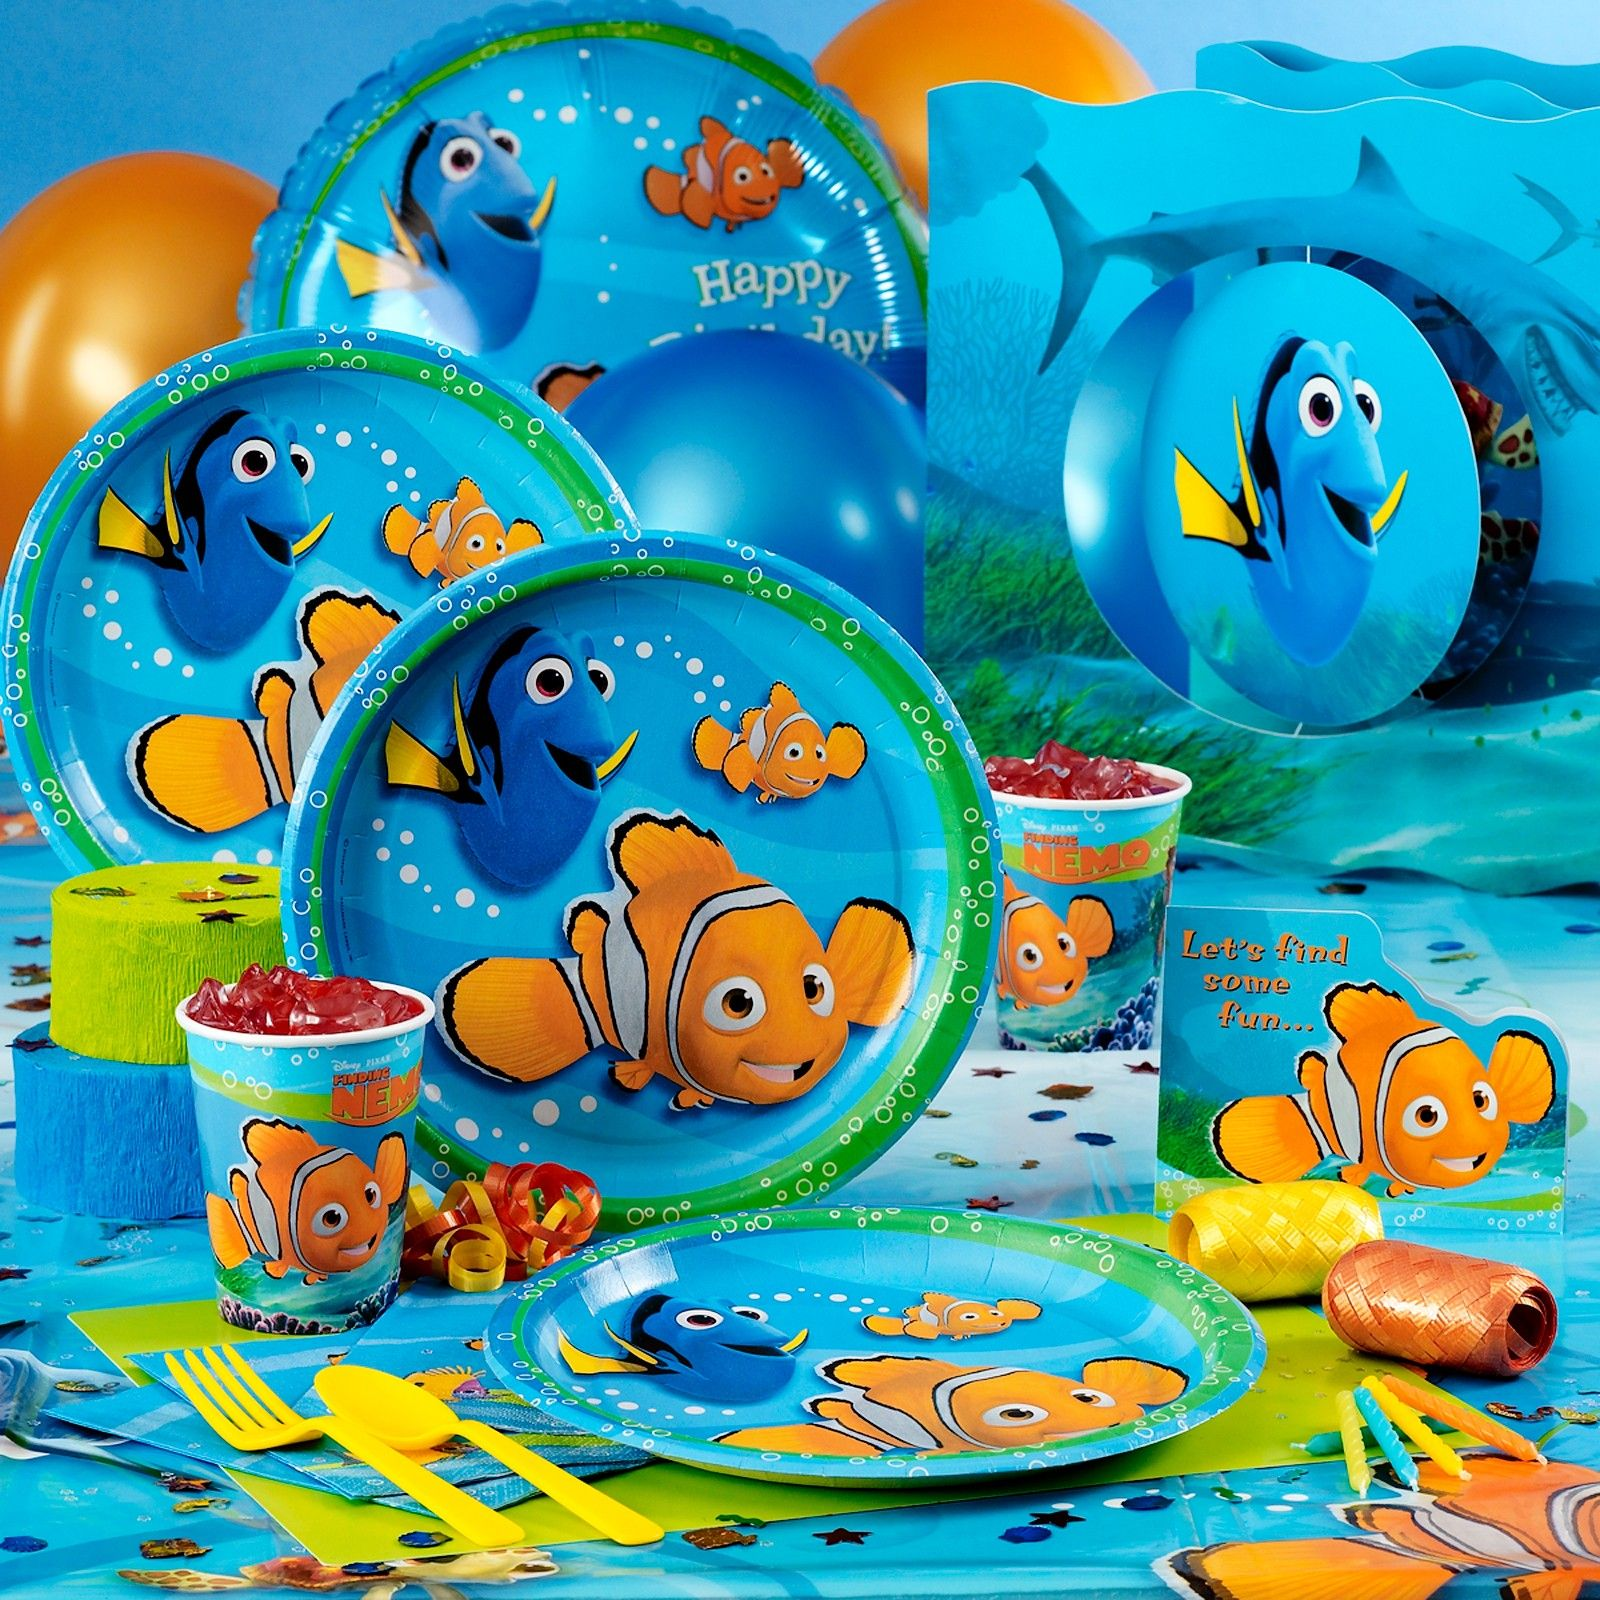 Finding Nemo Deluxe Party Pack | Party Ideas - Under the Sea ...